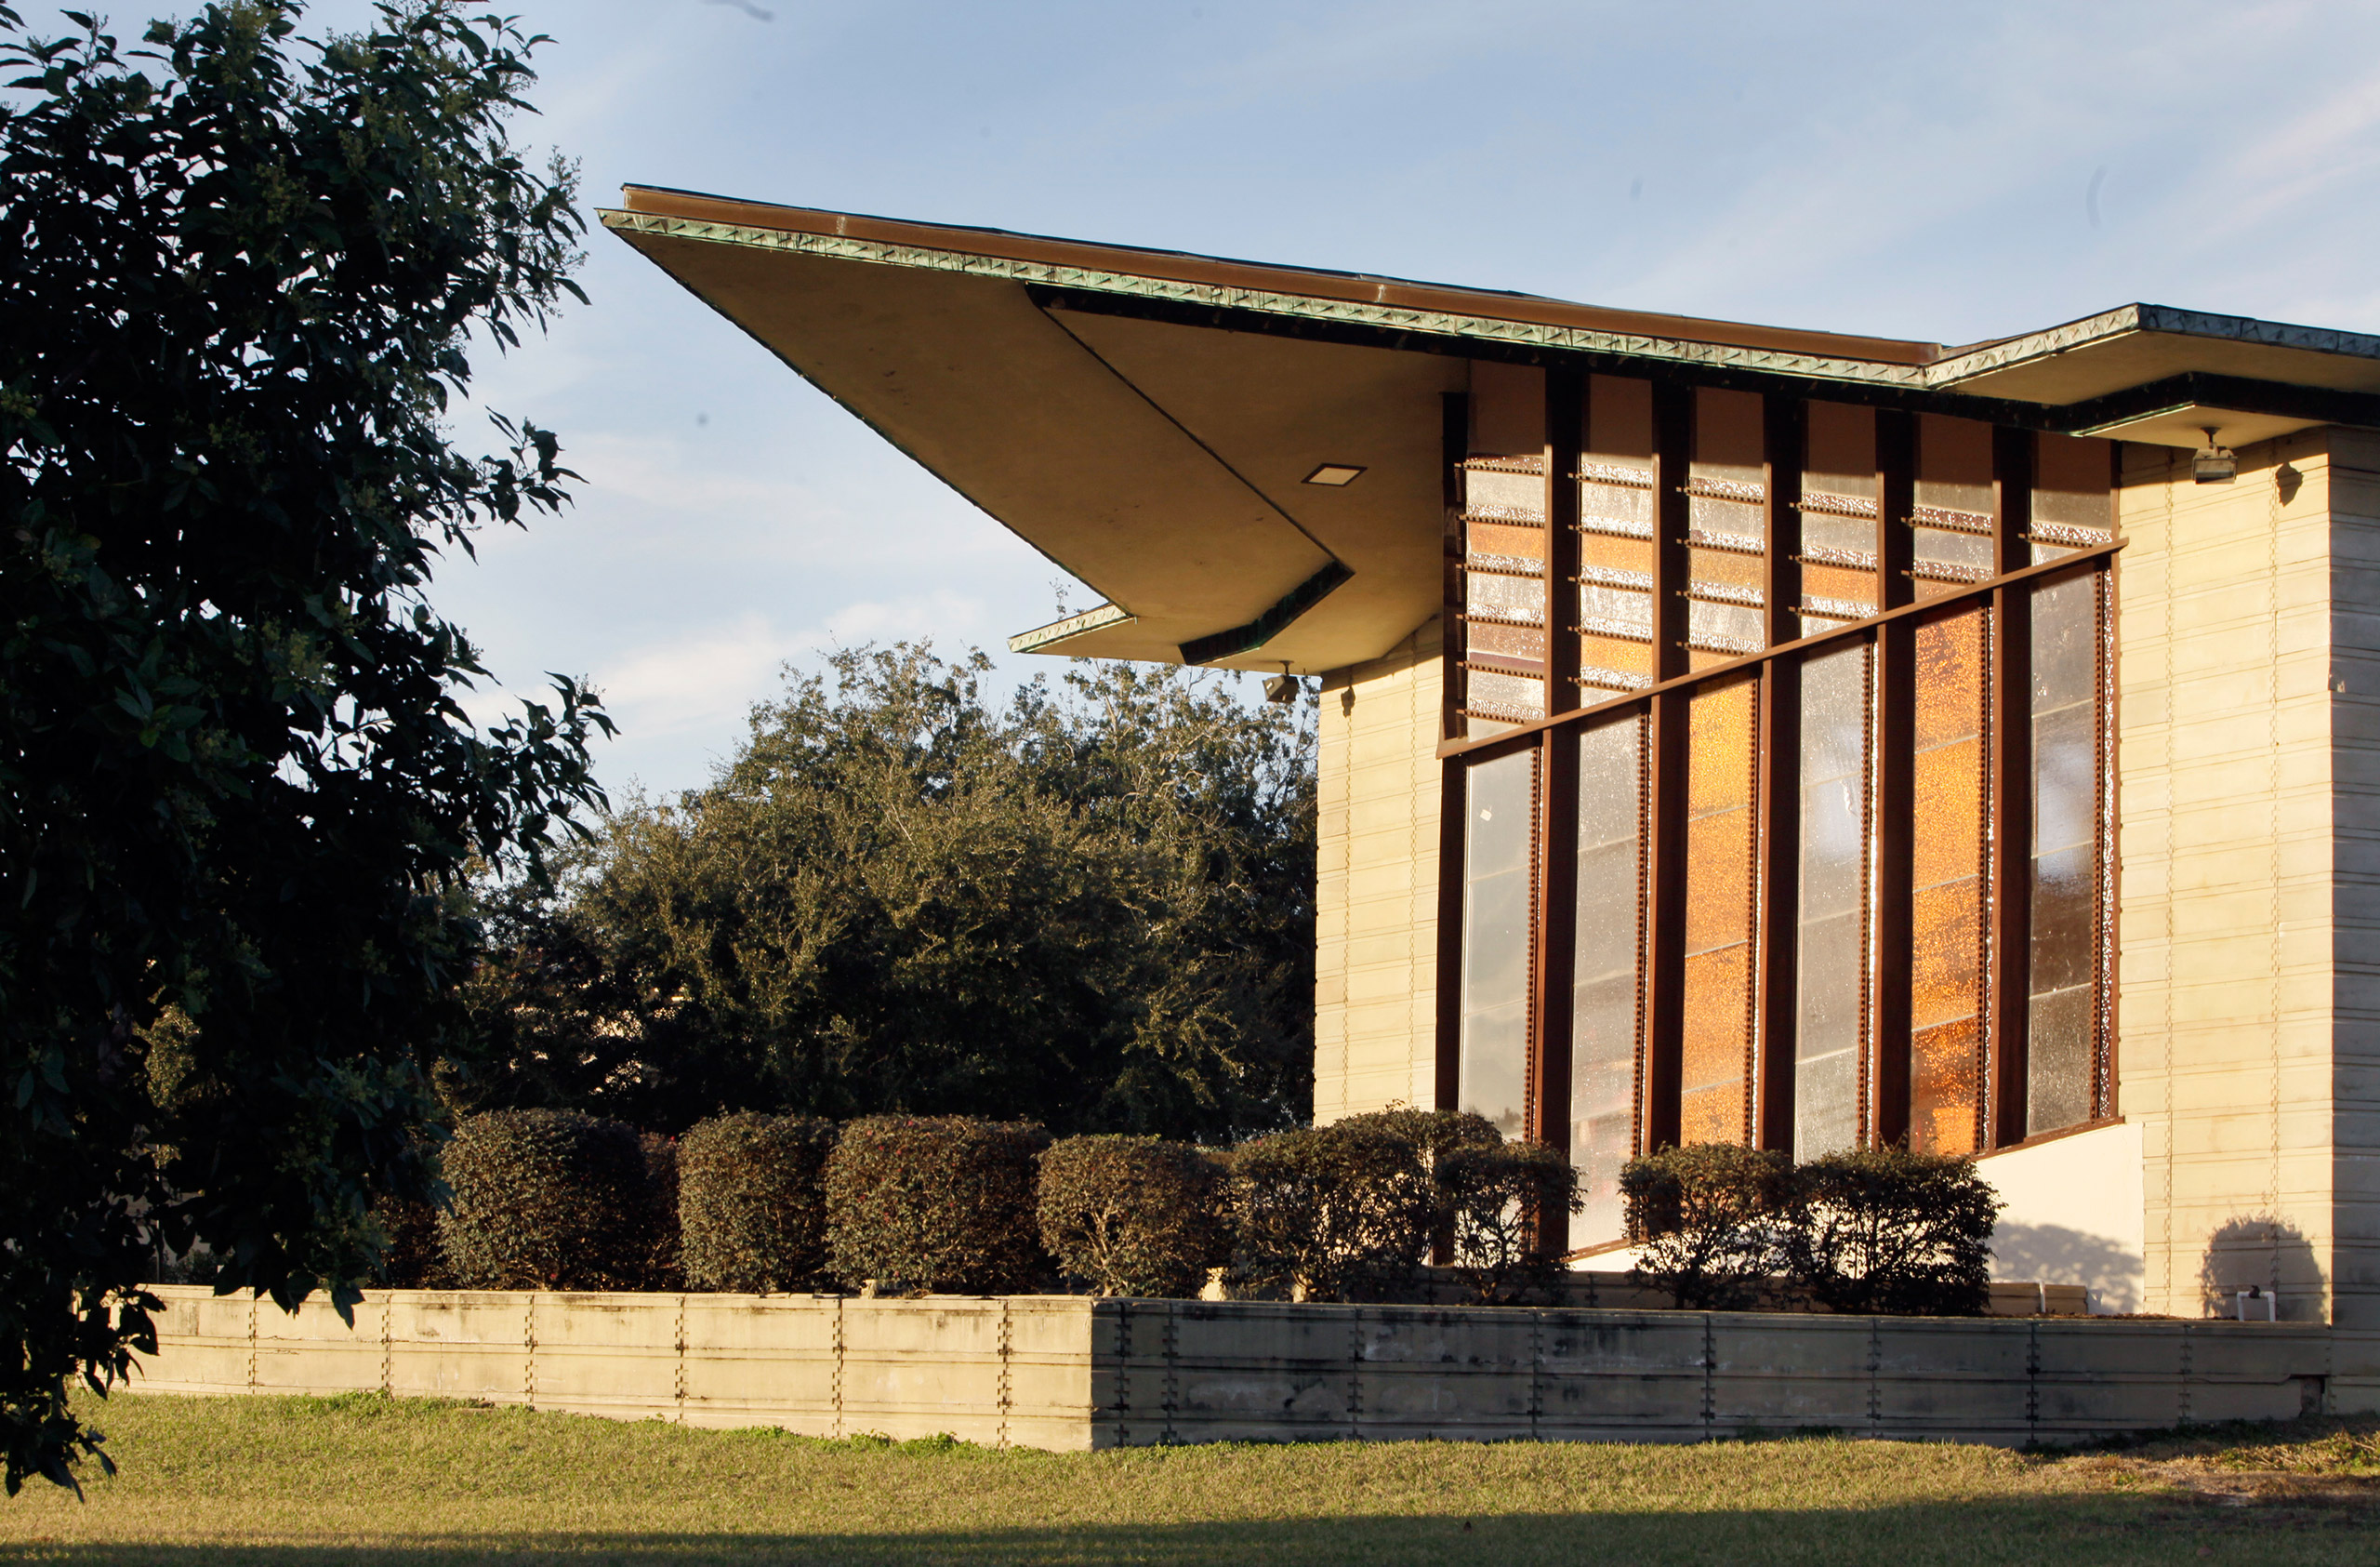 Frank Lloyd Wright's William H. Danforth Chapel at The Florida Southern College in Lakeland, Fla. Built circa 1938.